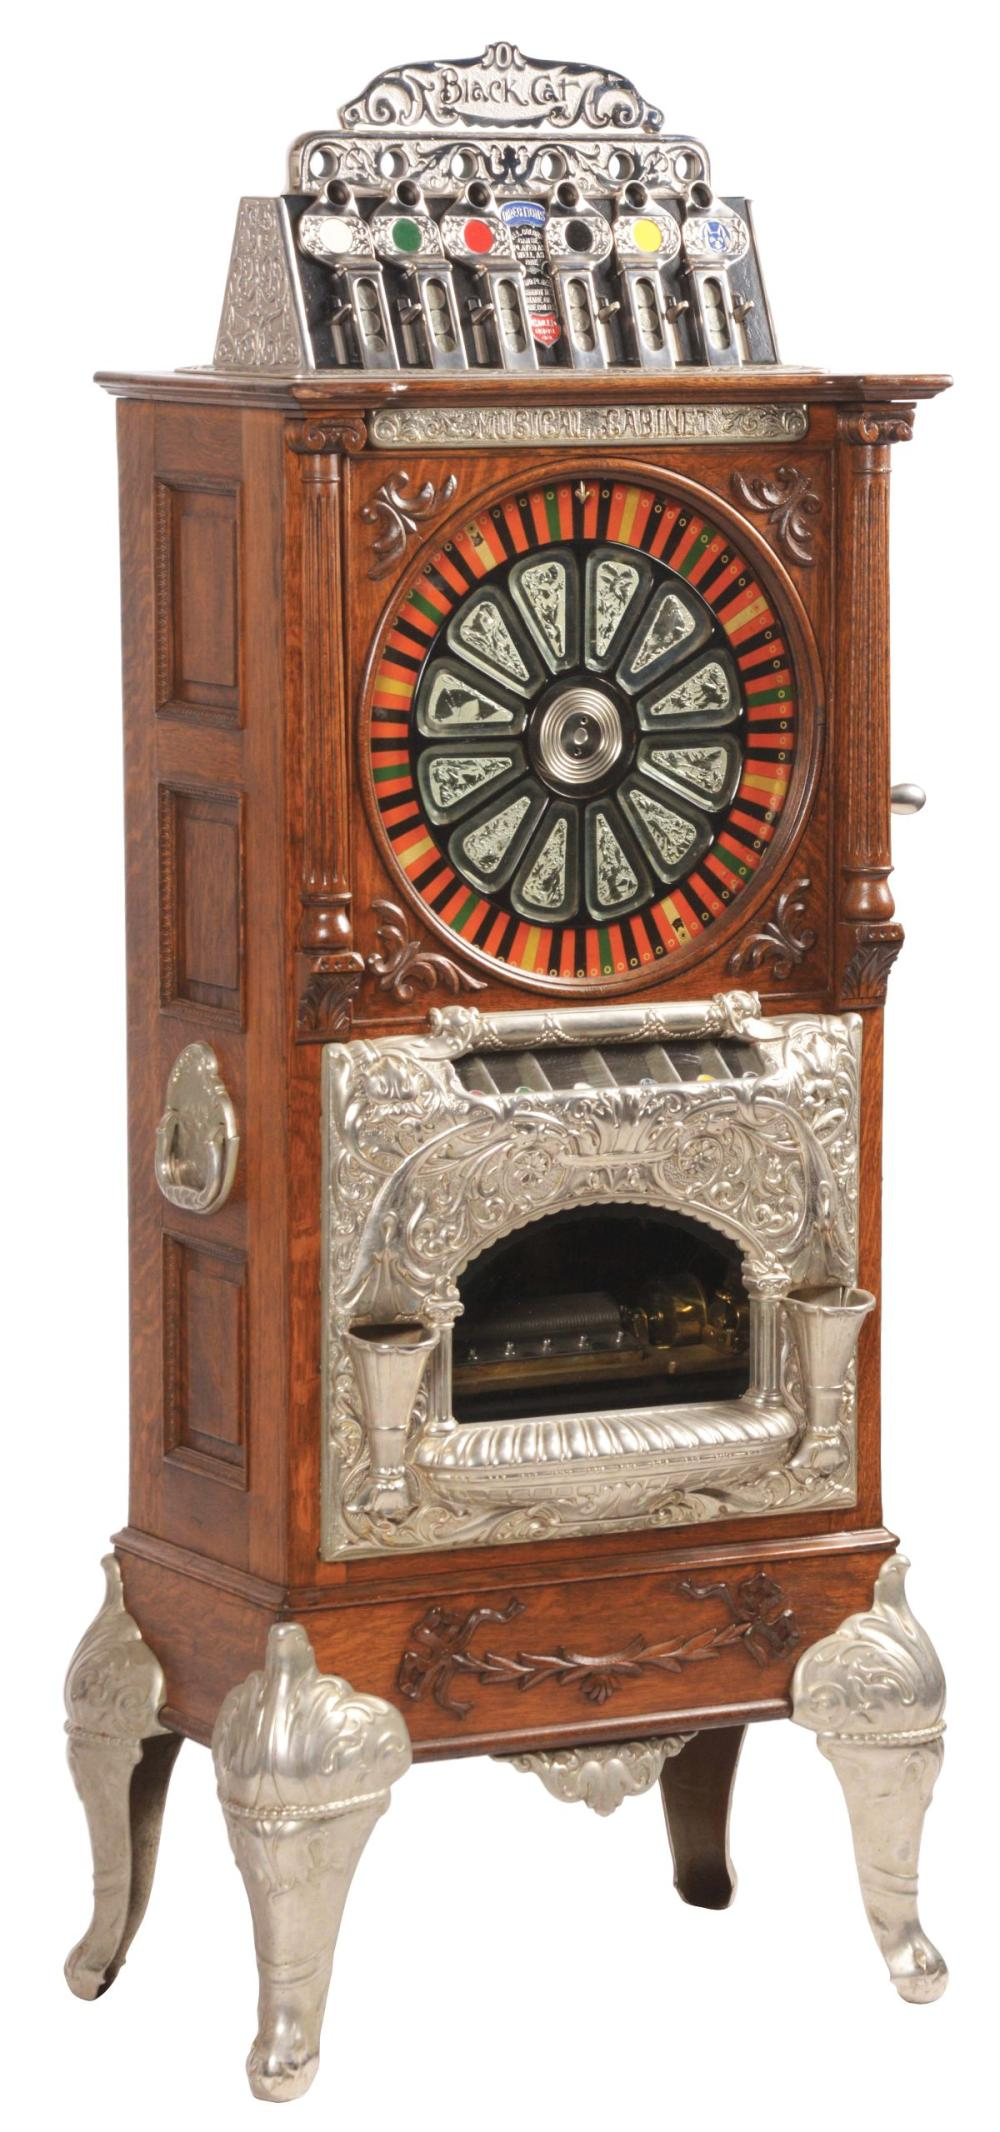 5¢ CAILLE BROTHERS BLACK CAT MUSICAL CABINET UPRIGHT SLOT MACHINE.